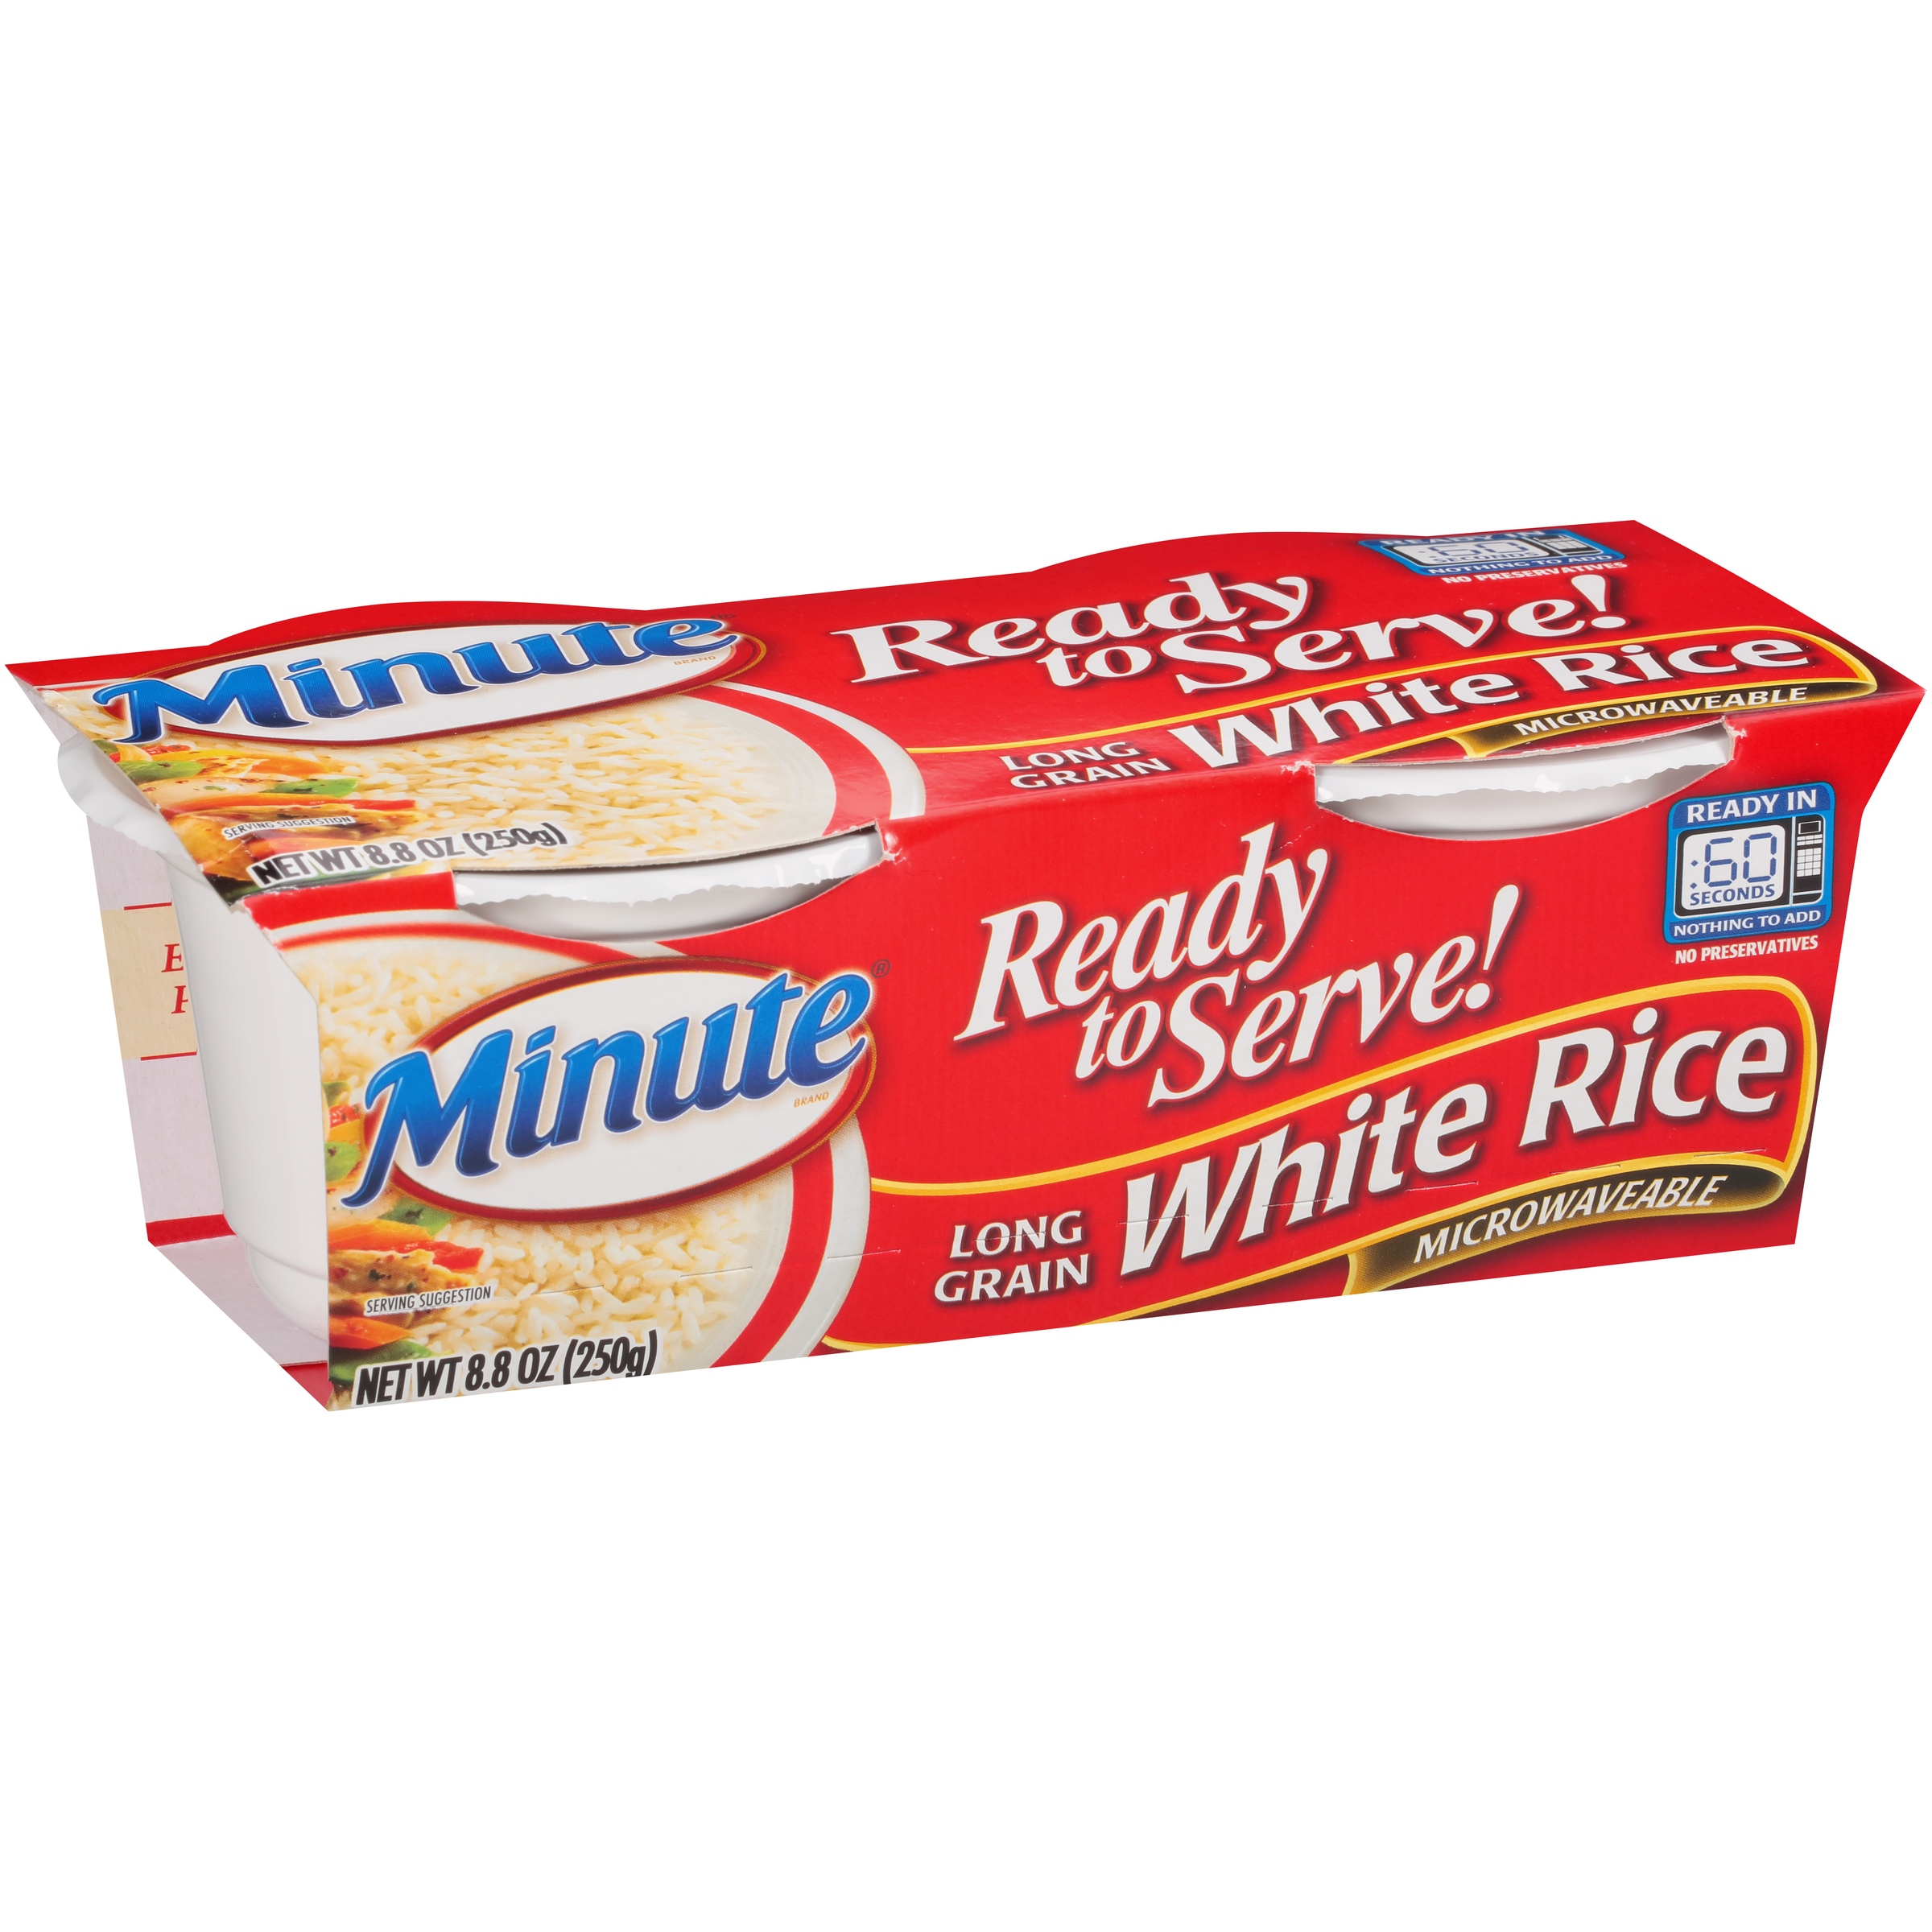 Minute Ready to Serve Long Grain White 4.4 Oz Rice 2 Ct Cups